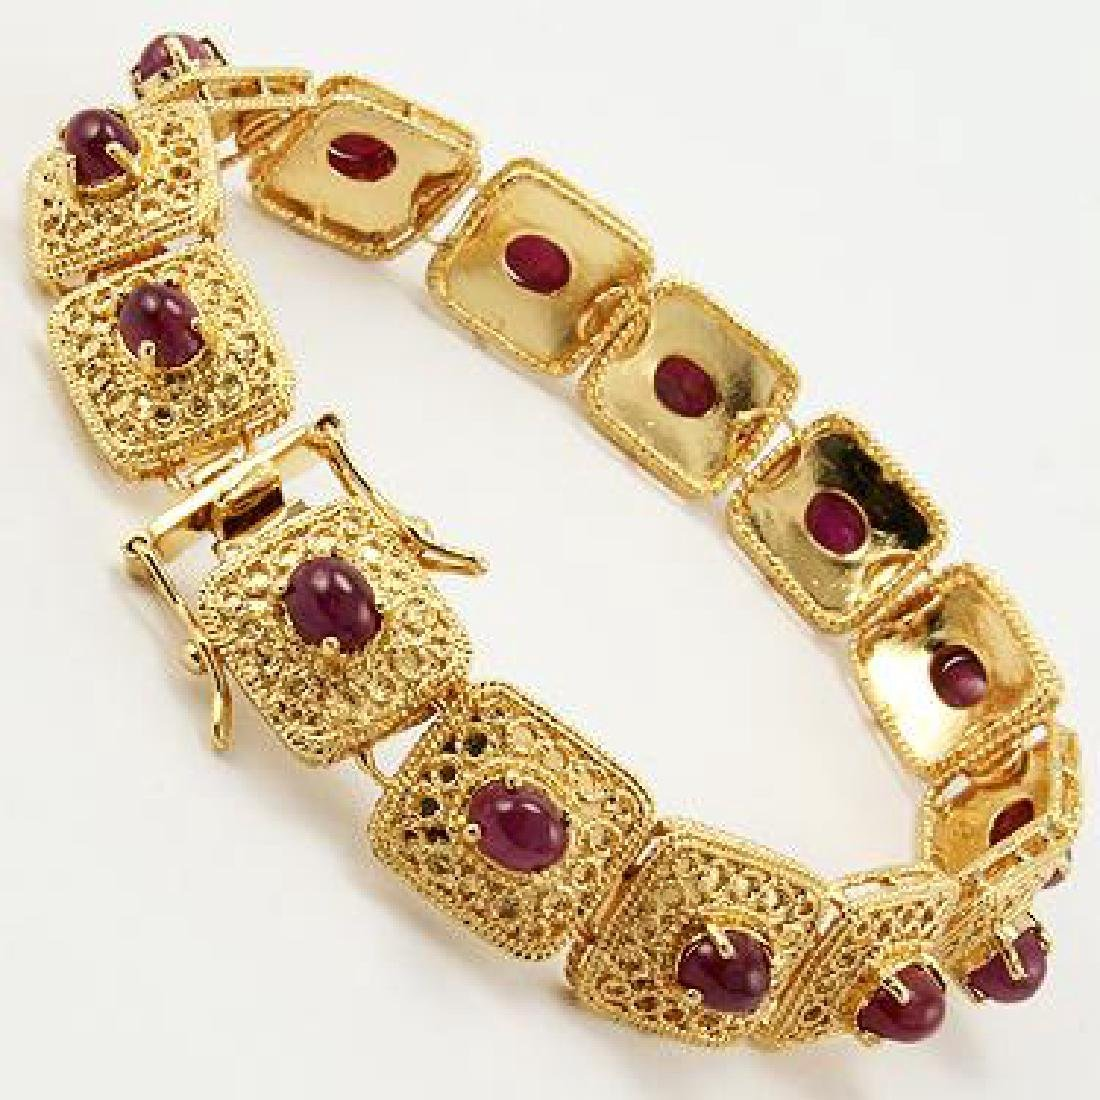 7 CT Cabochon Ruby Gold Bracelet - 3